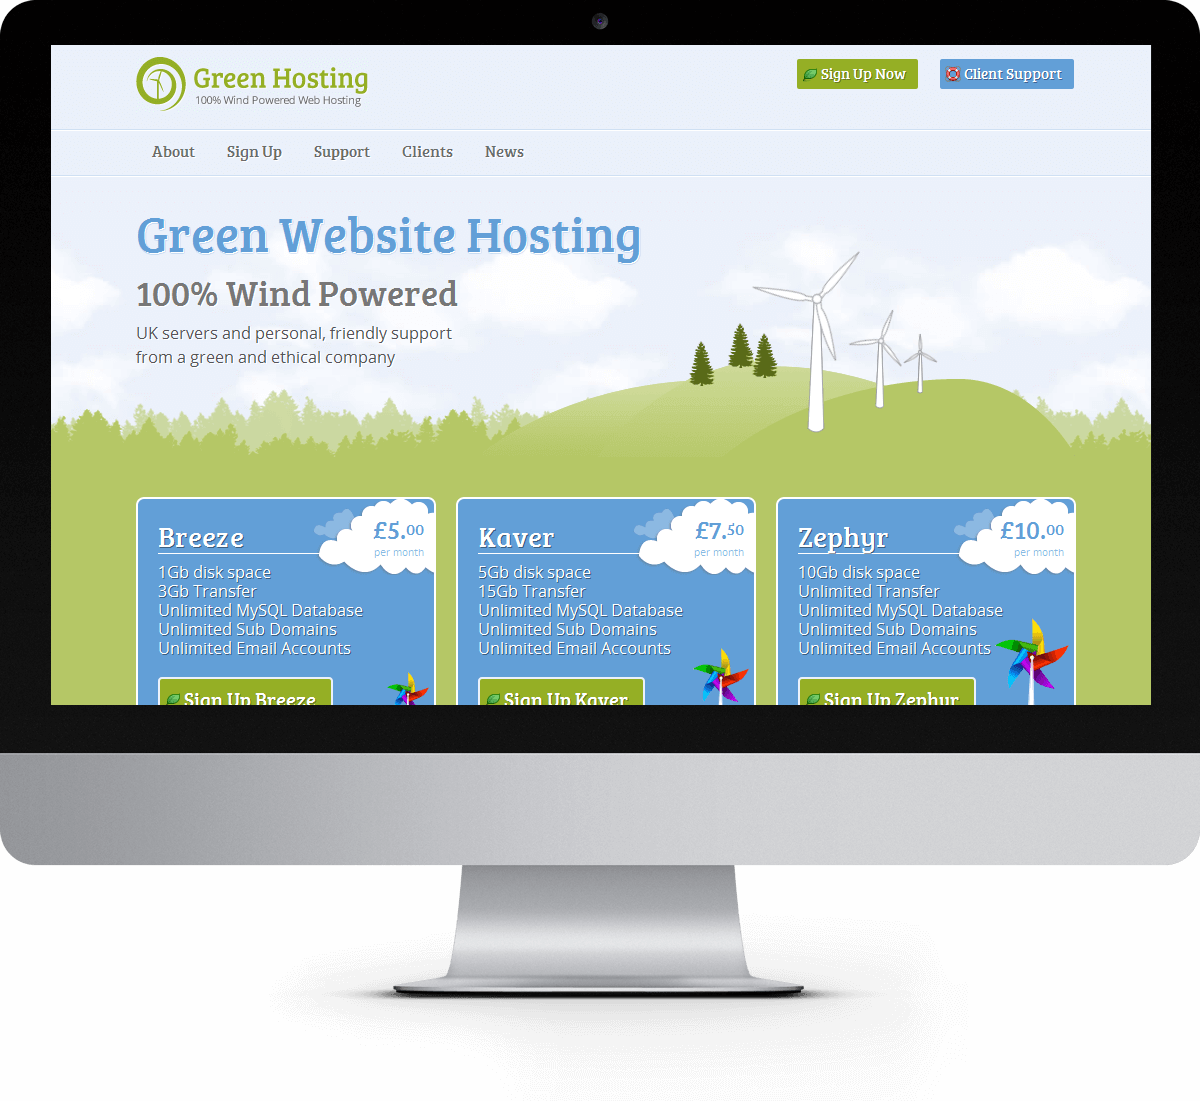 Green Hosting website